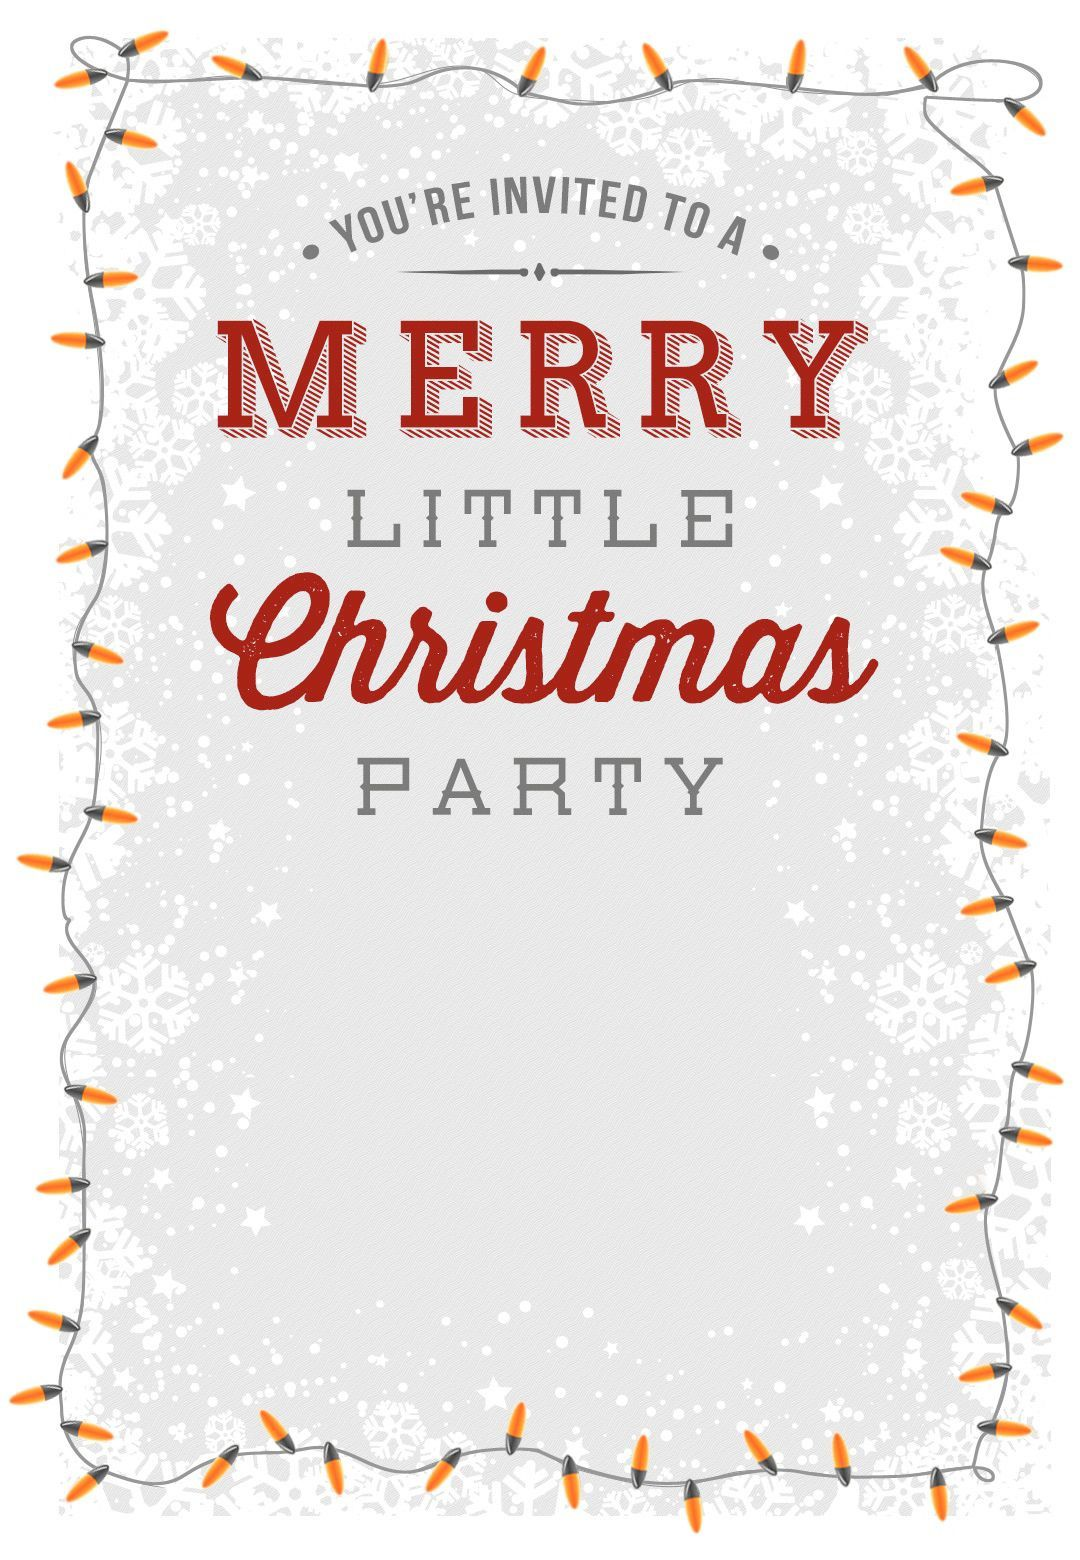 006 Fascinating Christma Party Invitation Template Idea  Holiday Download Free PsdFull